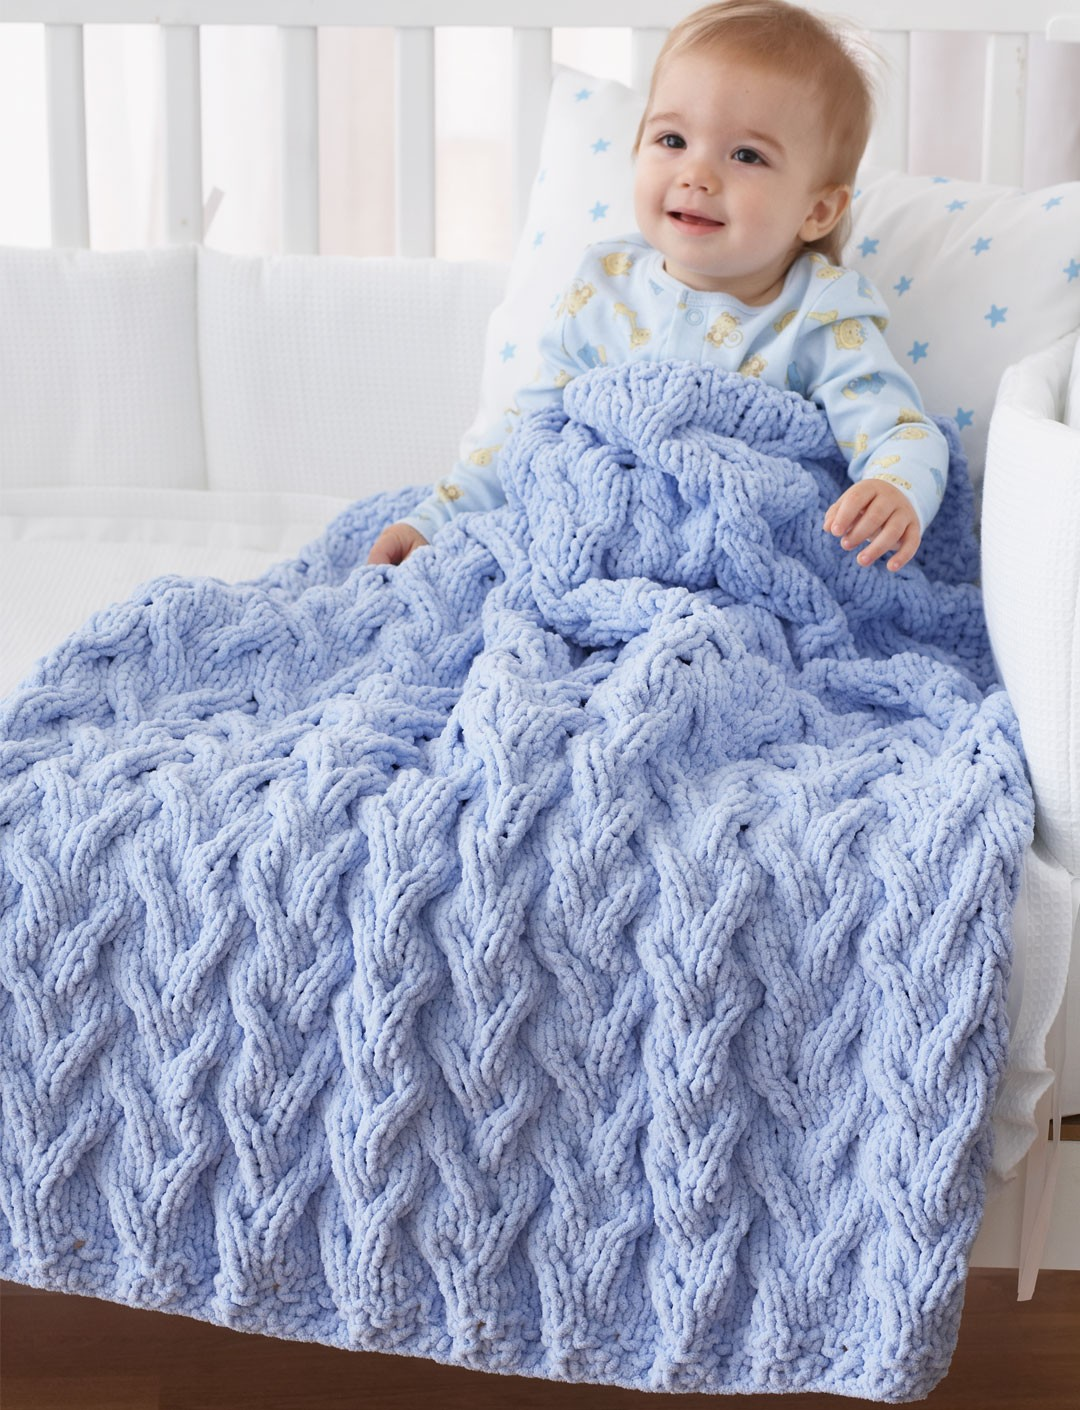 Free Knit Baby Afghan Patterns : Bernat Shadow Cable Baby Blanket, Knit Pattern Yarnspirations